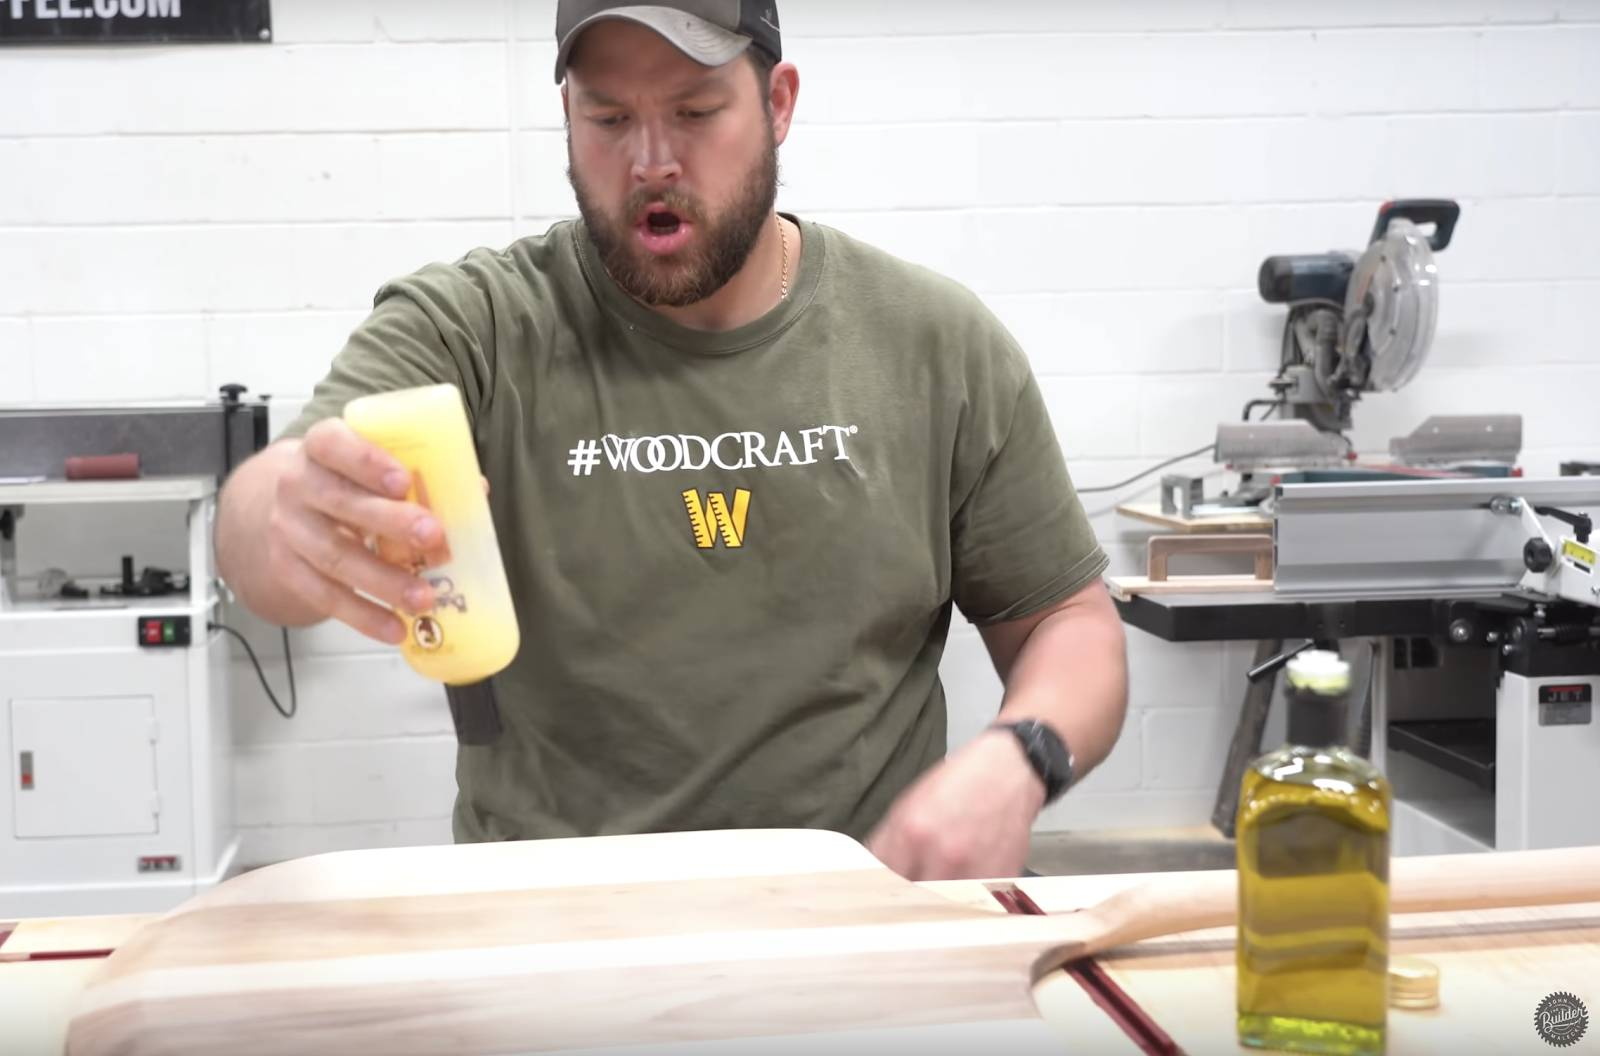 John malecki uses butcher block finish on his pizza peel